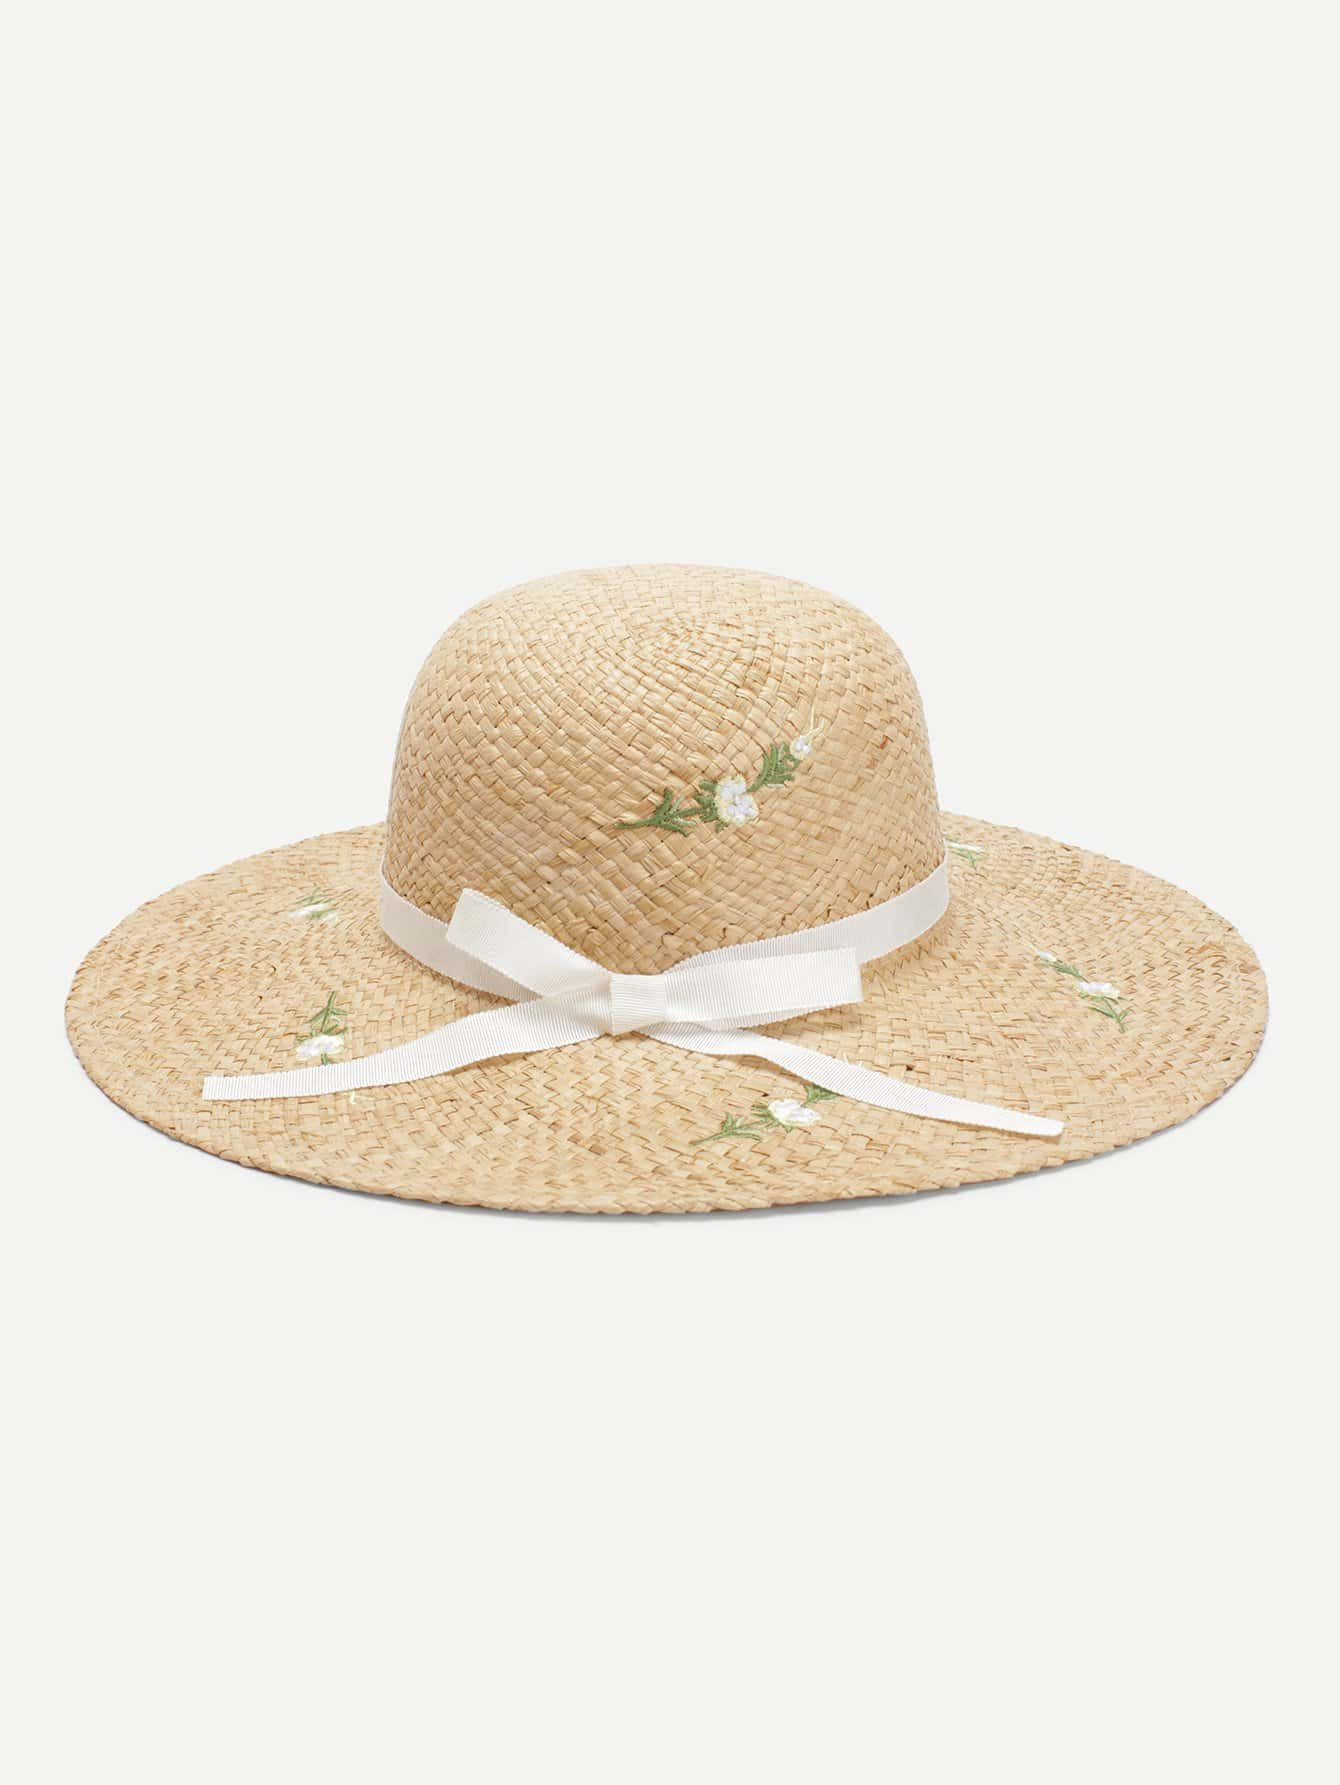 Bow Band Flower Decorated Straw Hat stetson men s breakers premium shantung straw hat